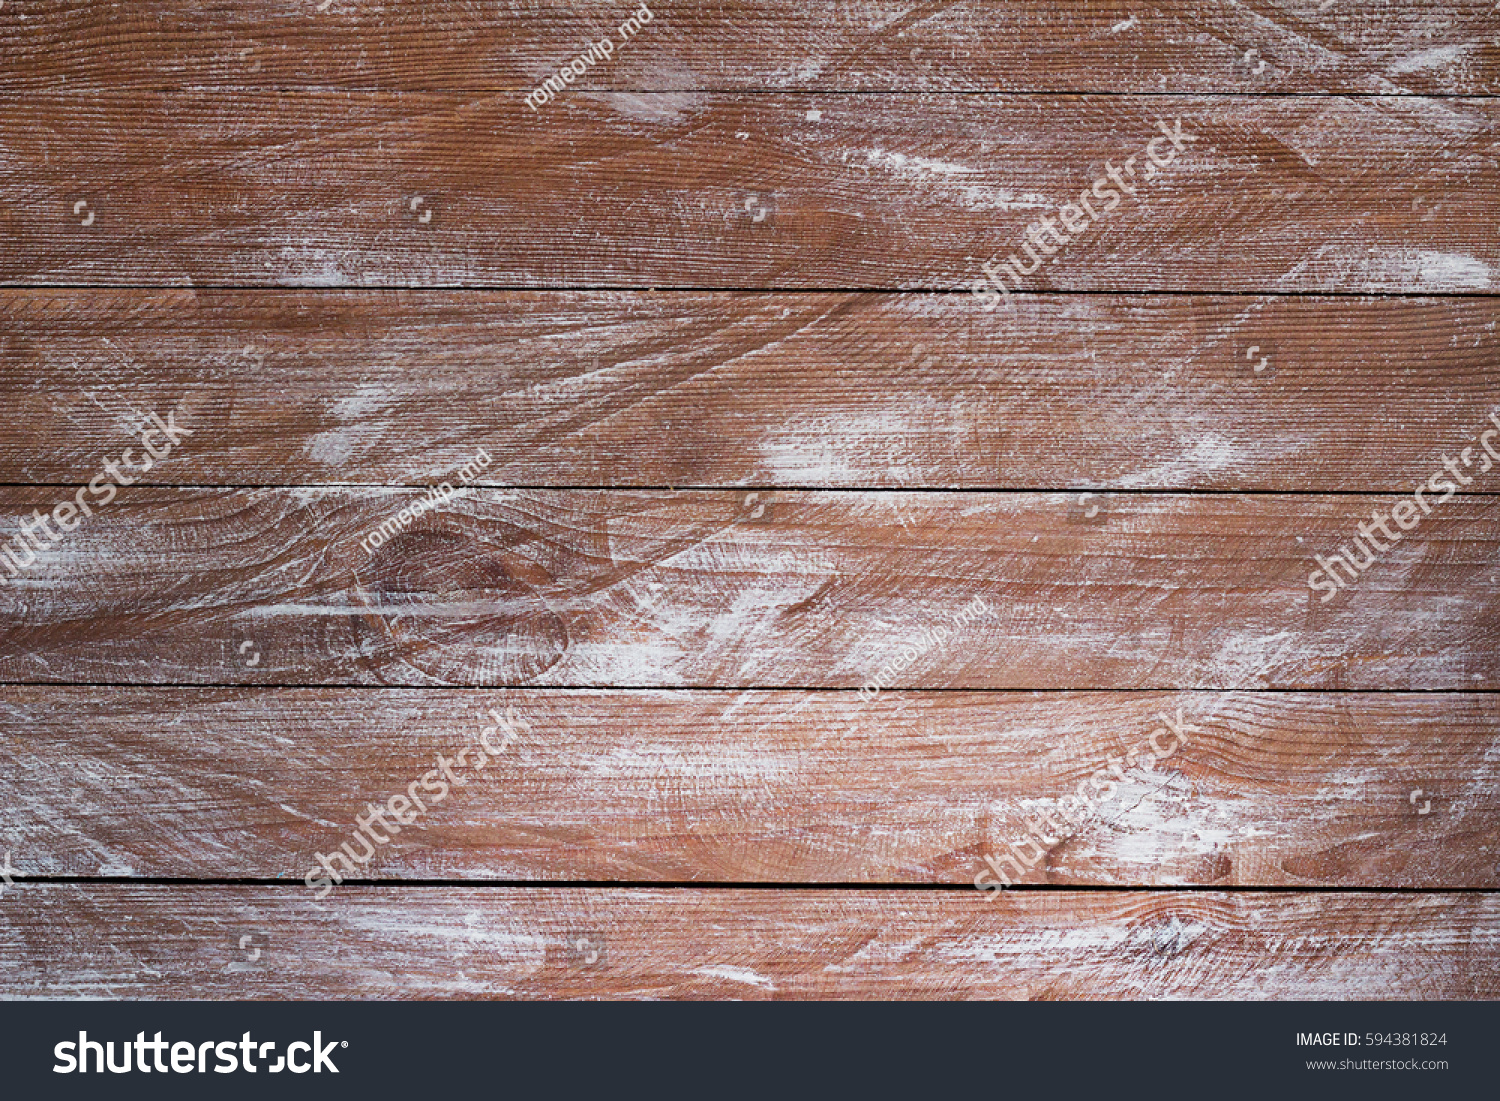 Vintage Wood Background Peeling Paint Wooden Stock Photo 594381824 Shutterstock